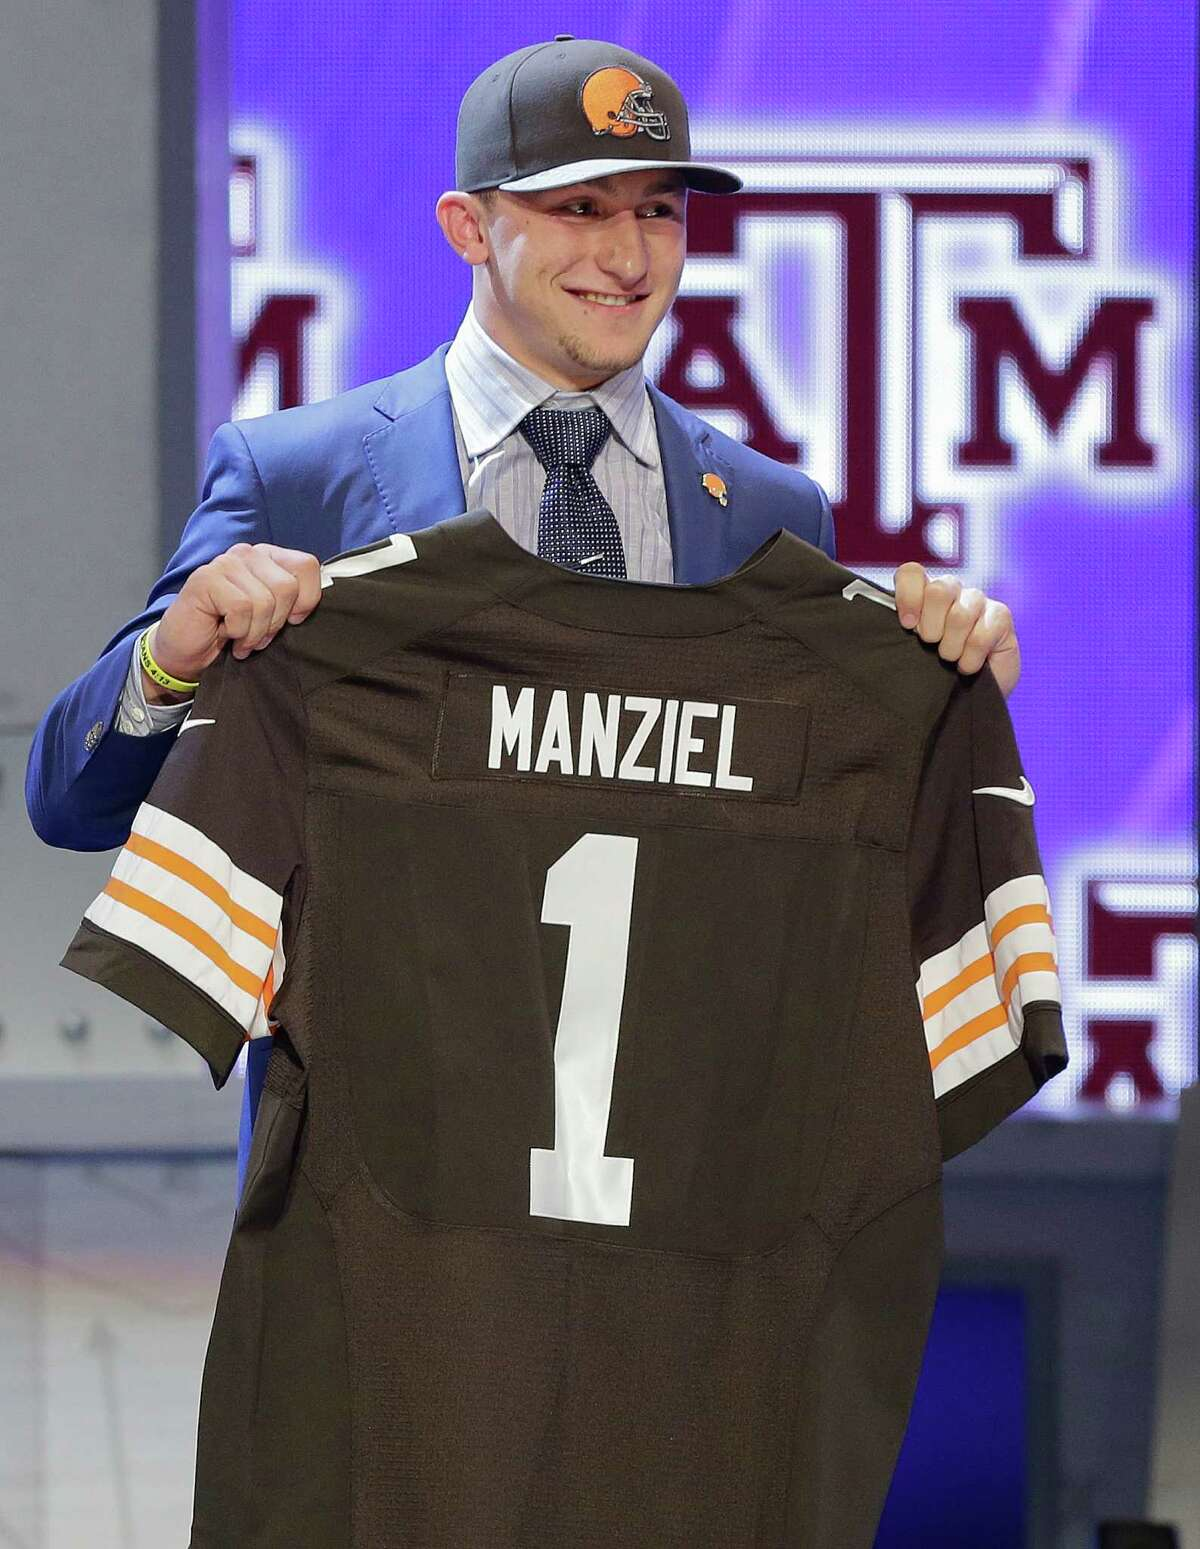 Johnny Manziel has yet to take a snap from under center as an NFL quarterback, but already his Cleveland Browns jersey is the best selling jersey in the league.Here is the current Top 10 best-selling NFL jerseys ...